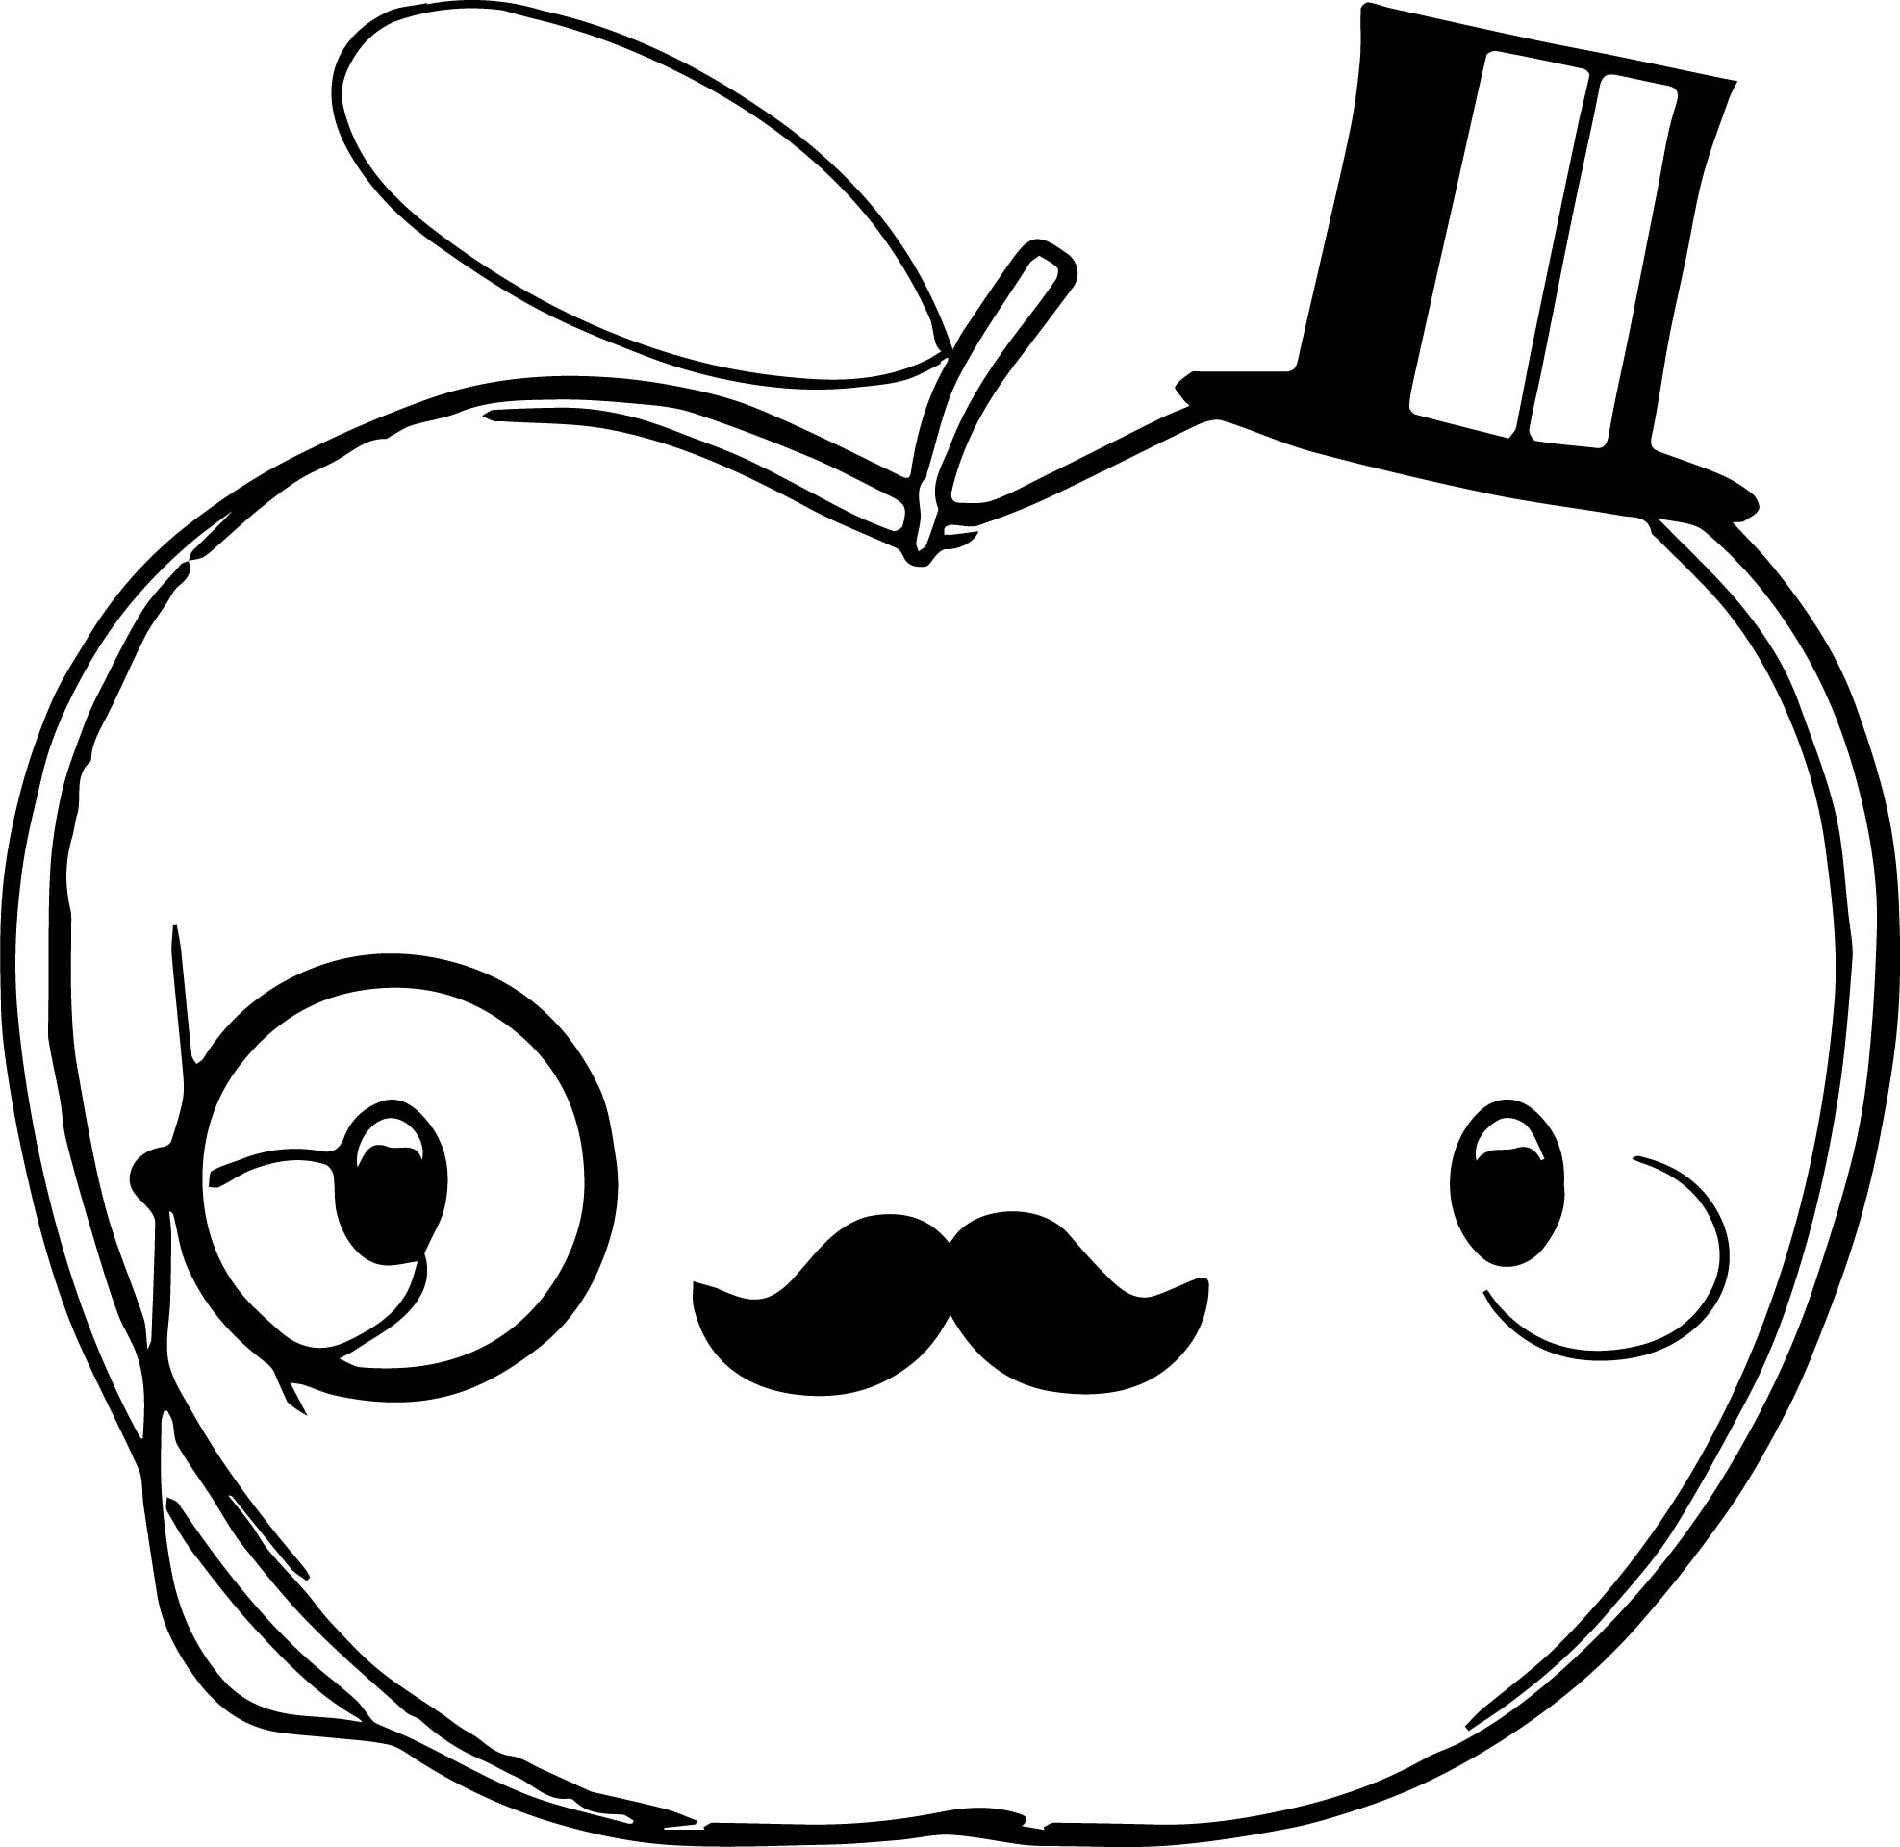 apple pictures to color apples coloring pages learn to coloring color apple to pictures